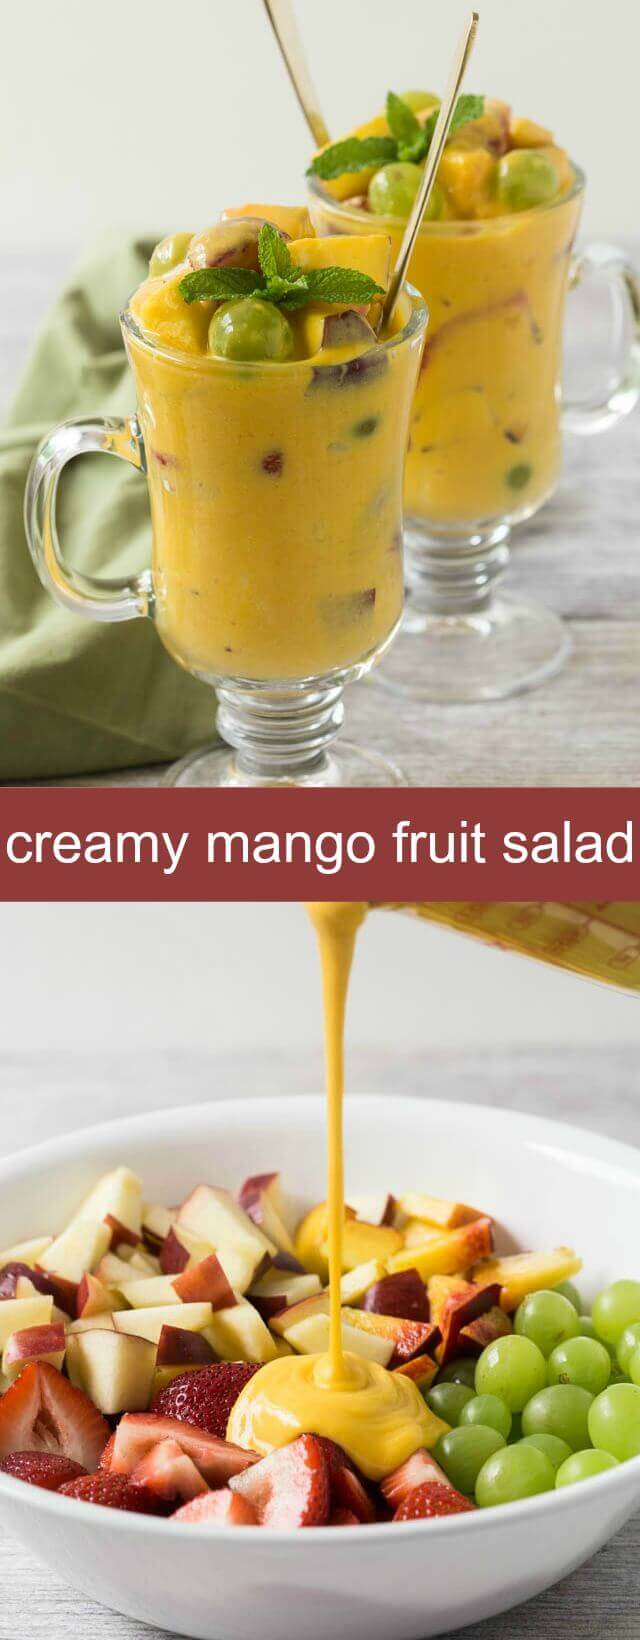 This Creamy Mango Fruit Salad is like having dessert any time of the day. You will love all the goodness that goes into this salad.